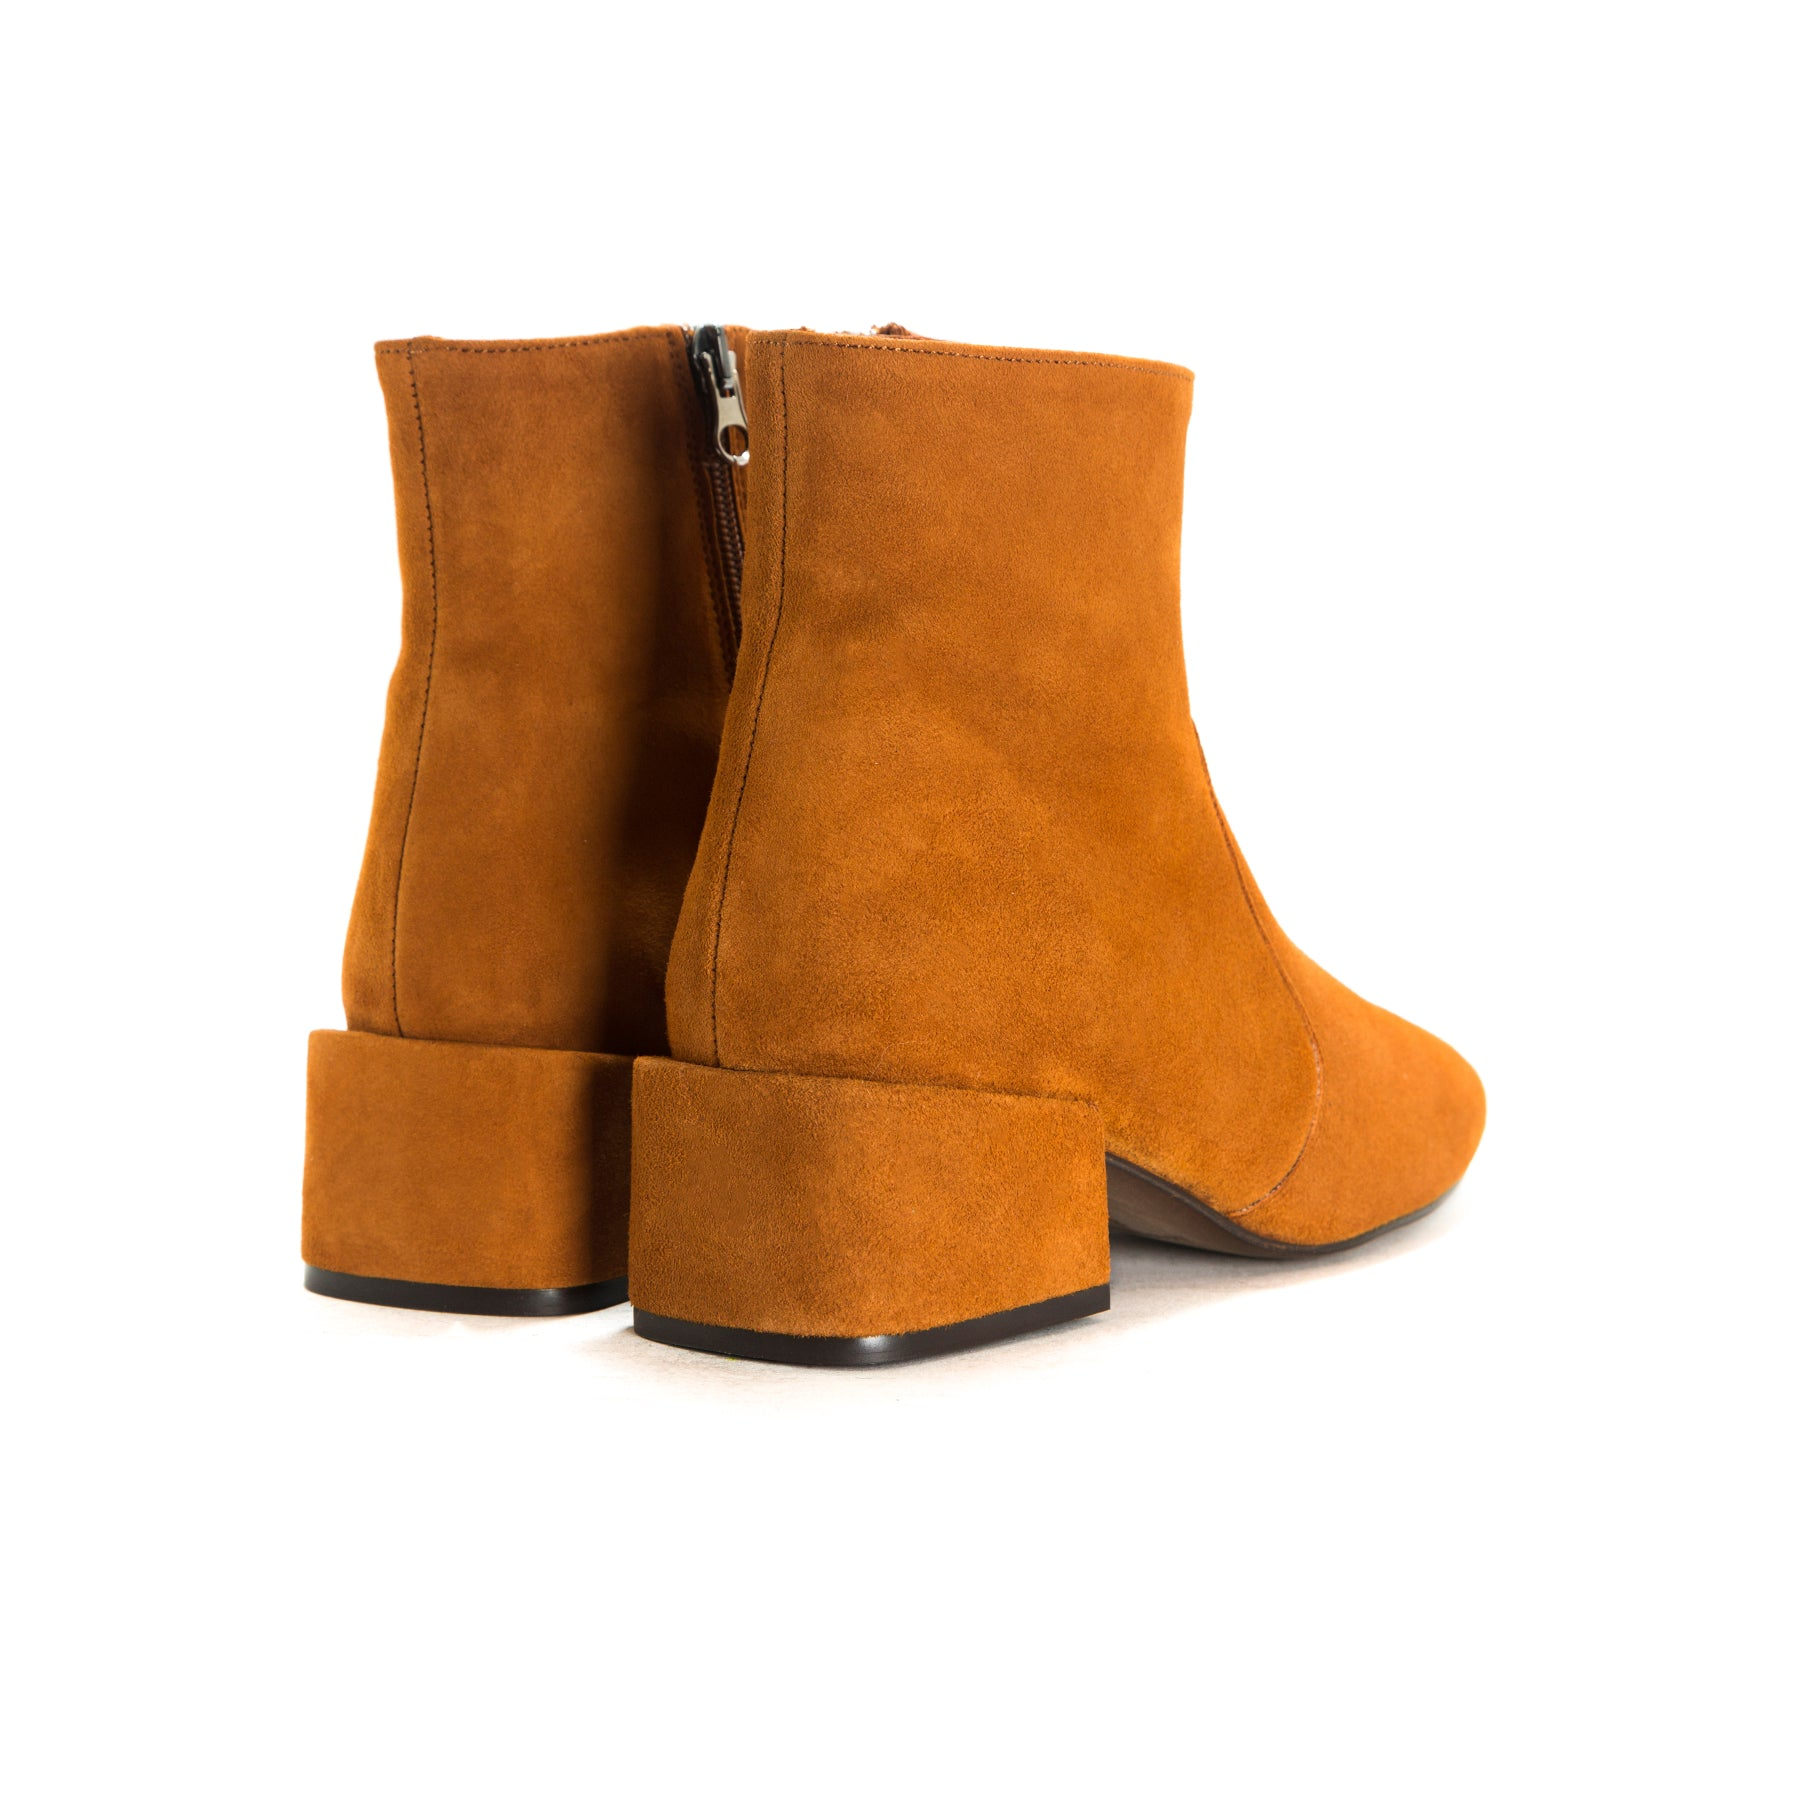 Thassos Tan Suede Ankle Boots